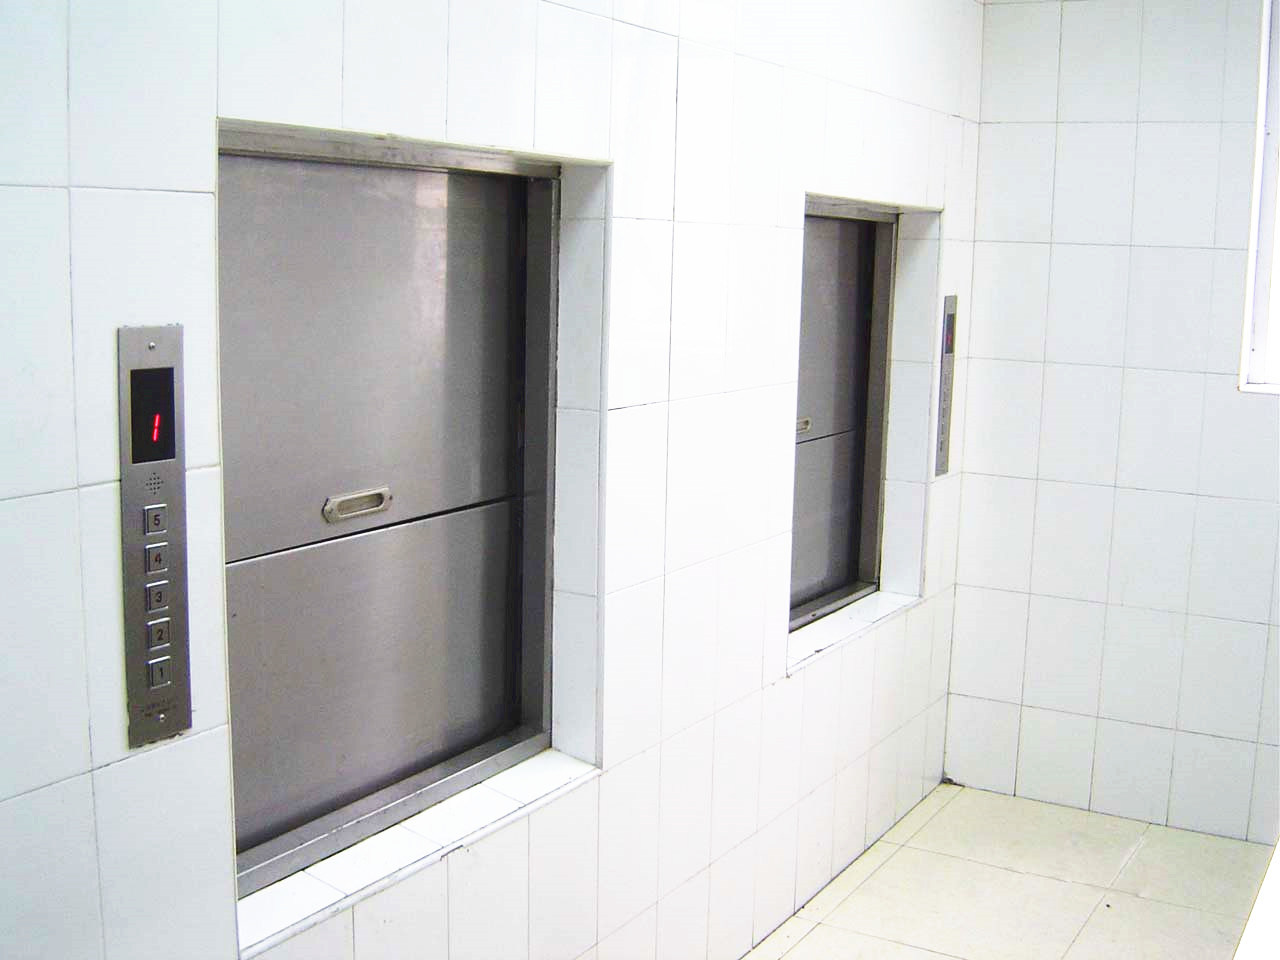 Dumbwaiter Elevator Service Lift with Window Type